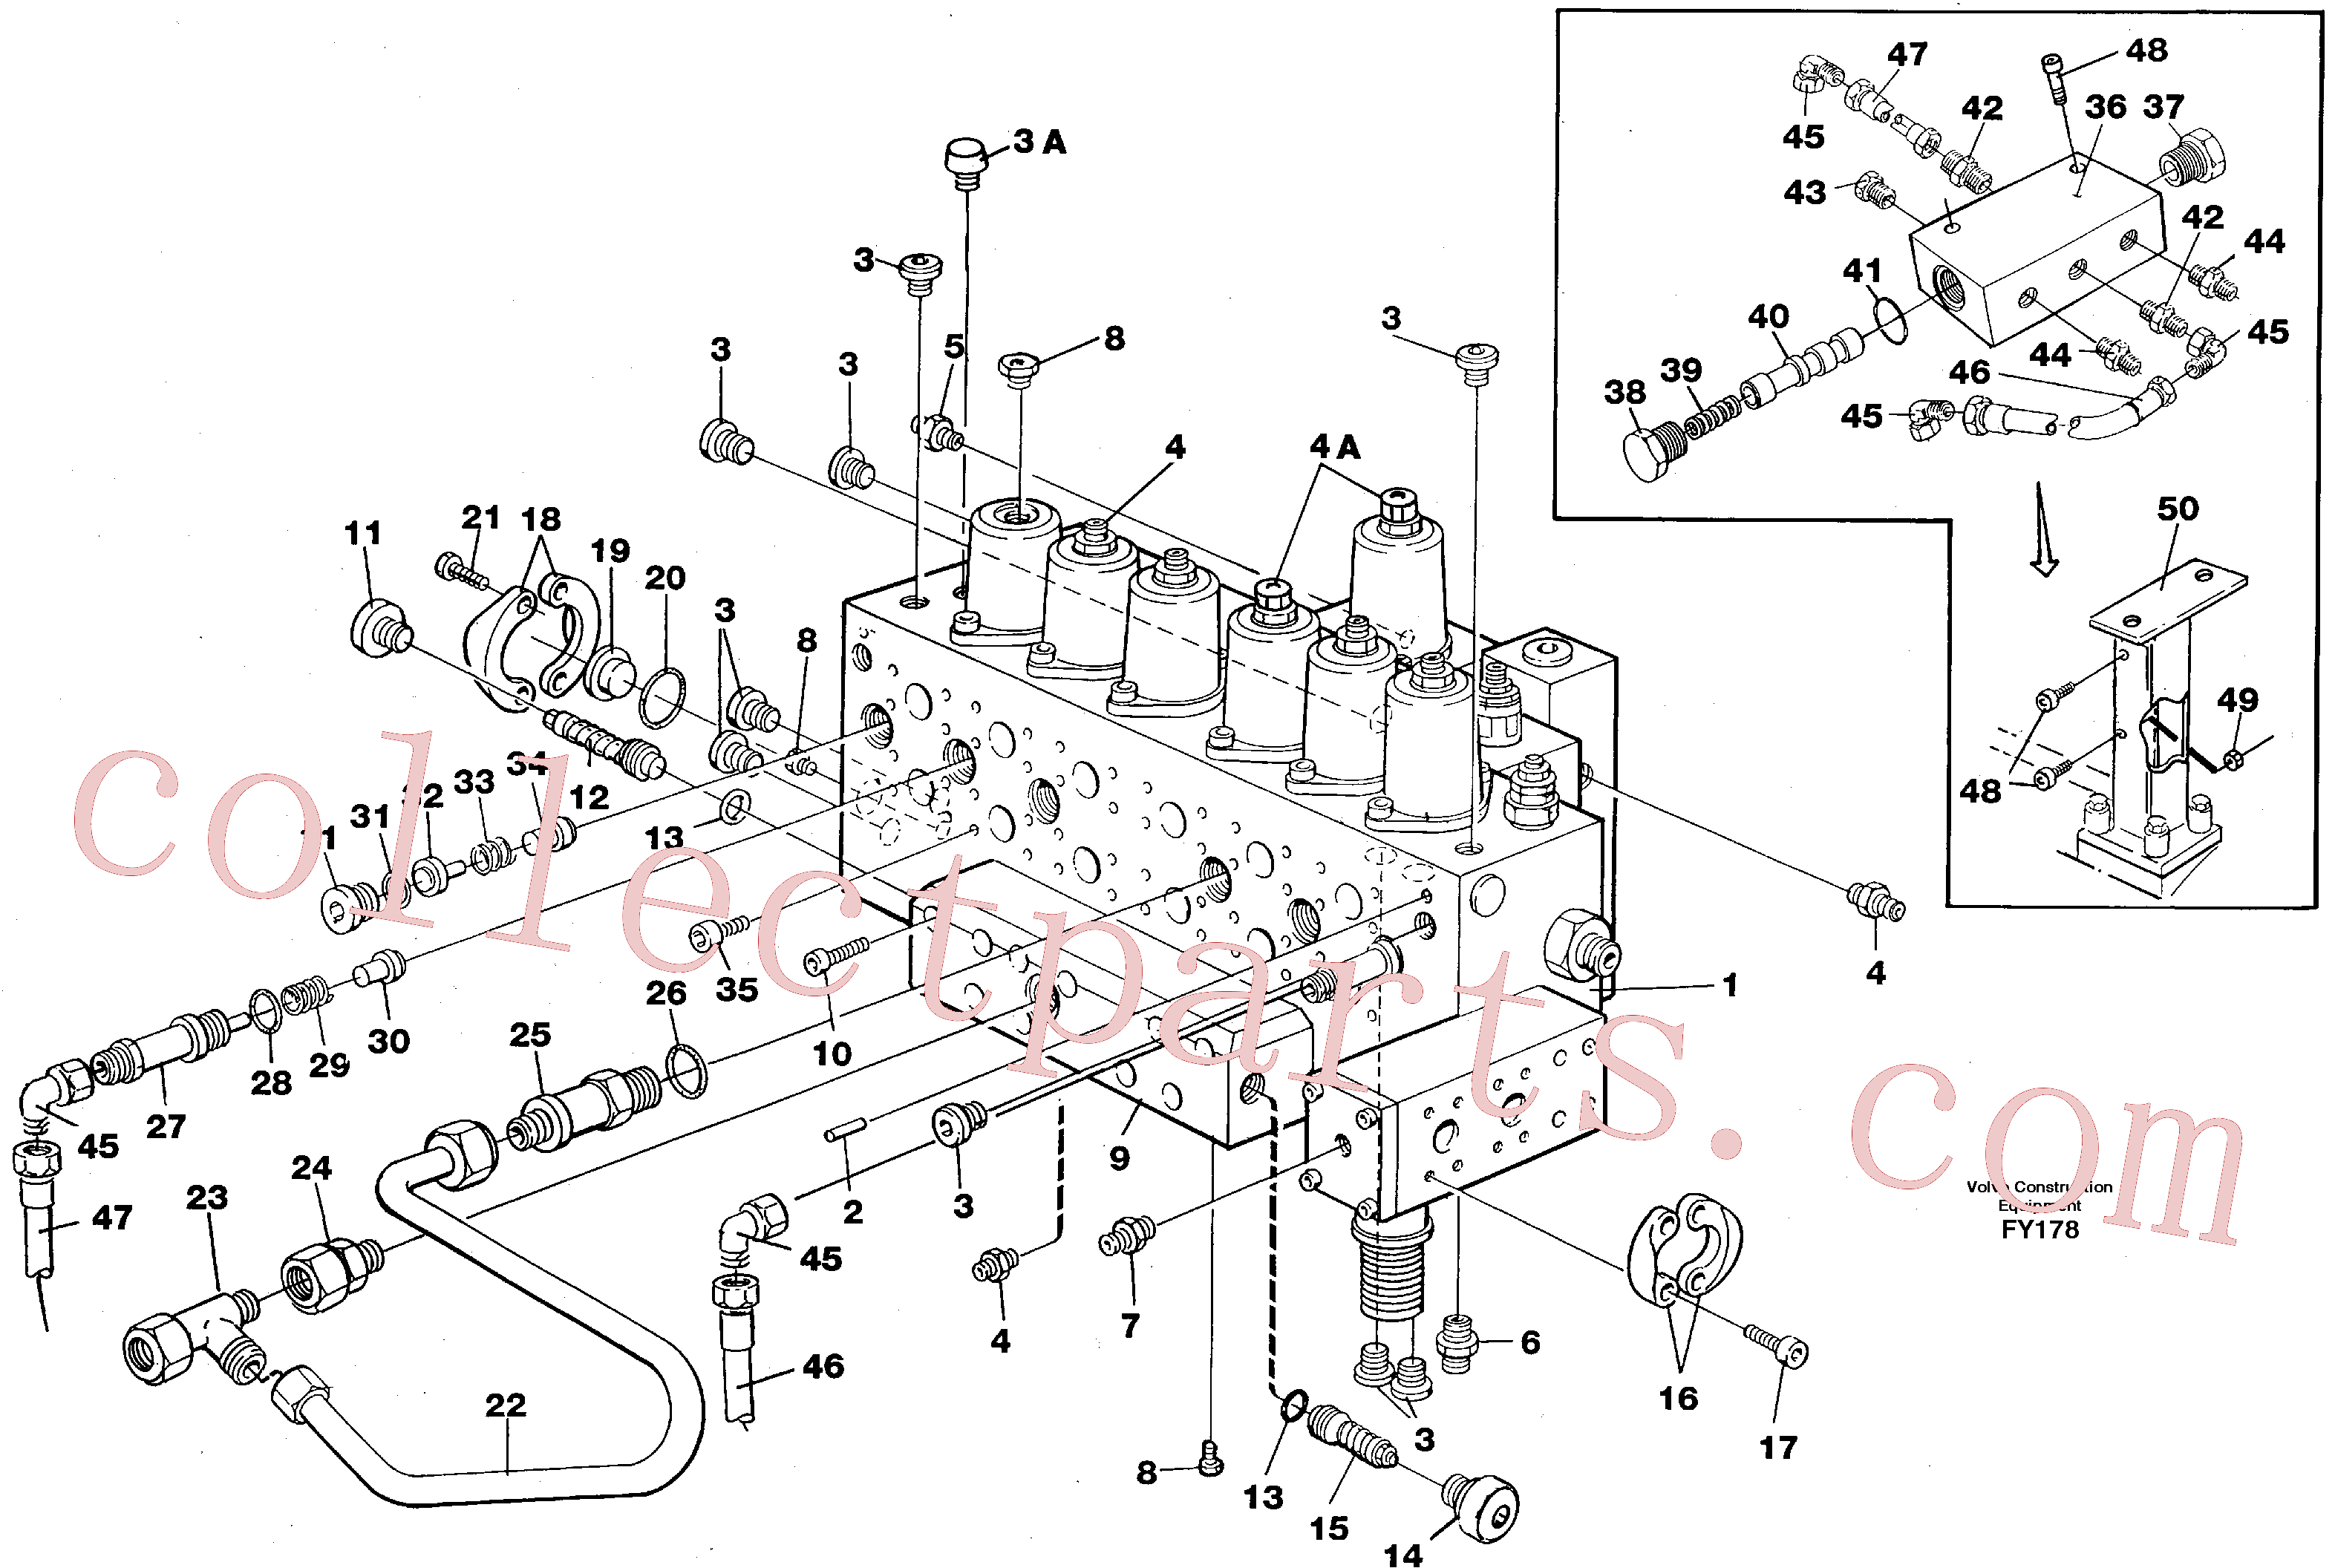 VOE11015454 for Volvo Main valve assembly, tubes connections, assembly bloc(FY178 assembly)